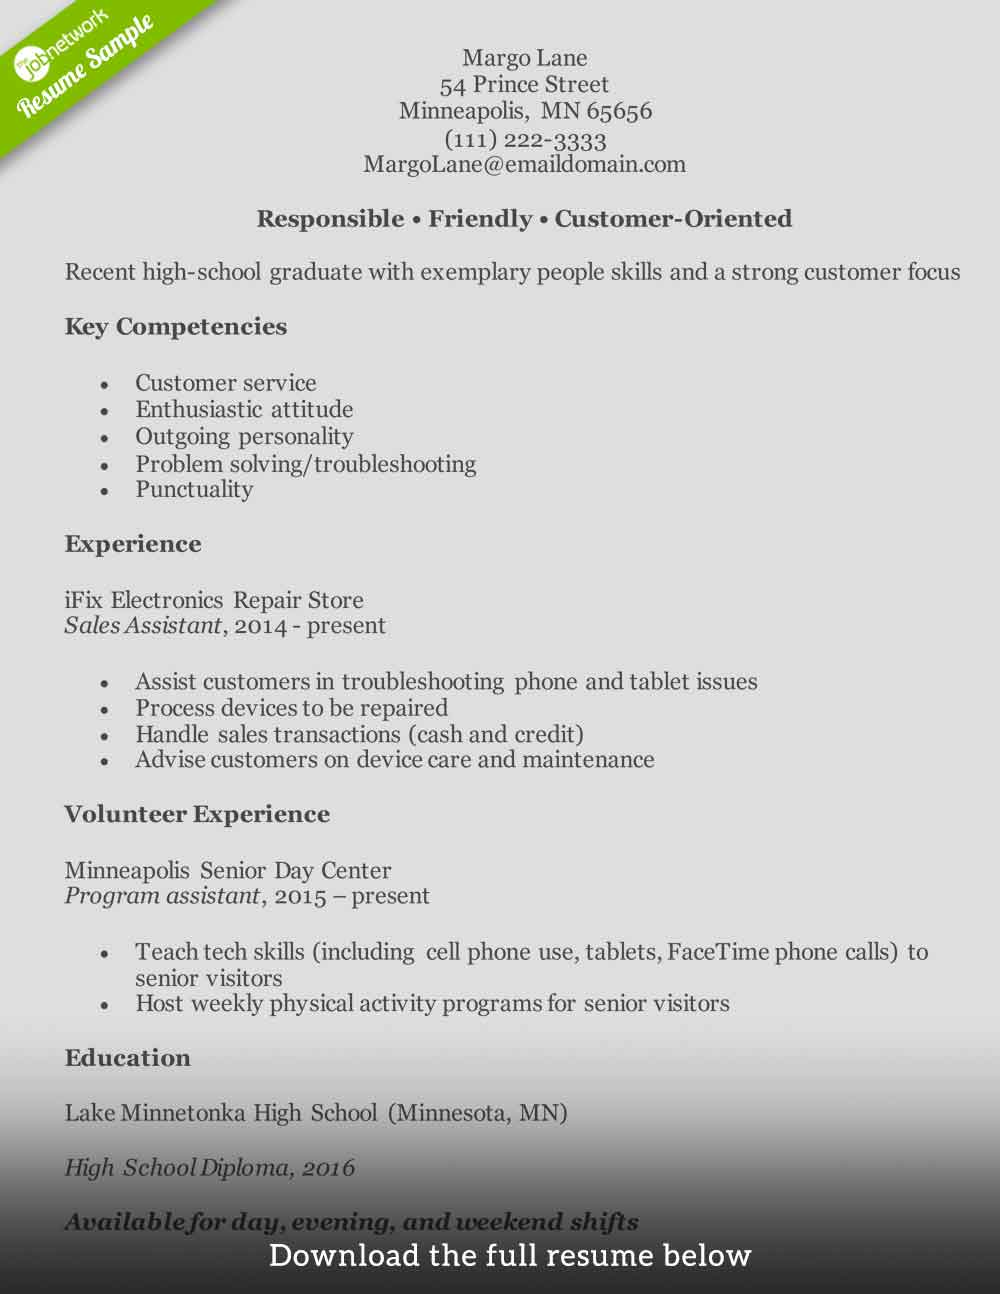 customer service resume to write the perfect one examples rep entry level1 school apple Resume Customer Service Rep Resume